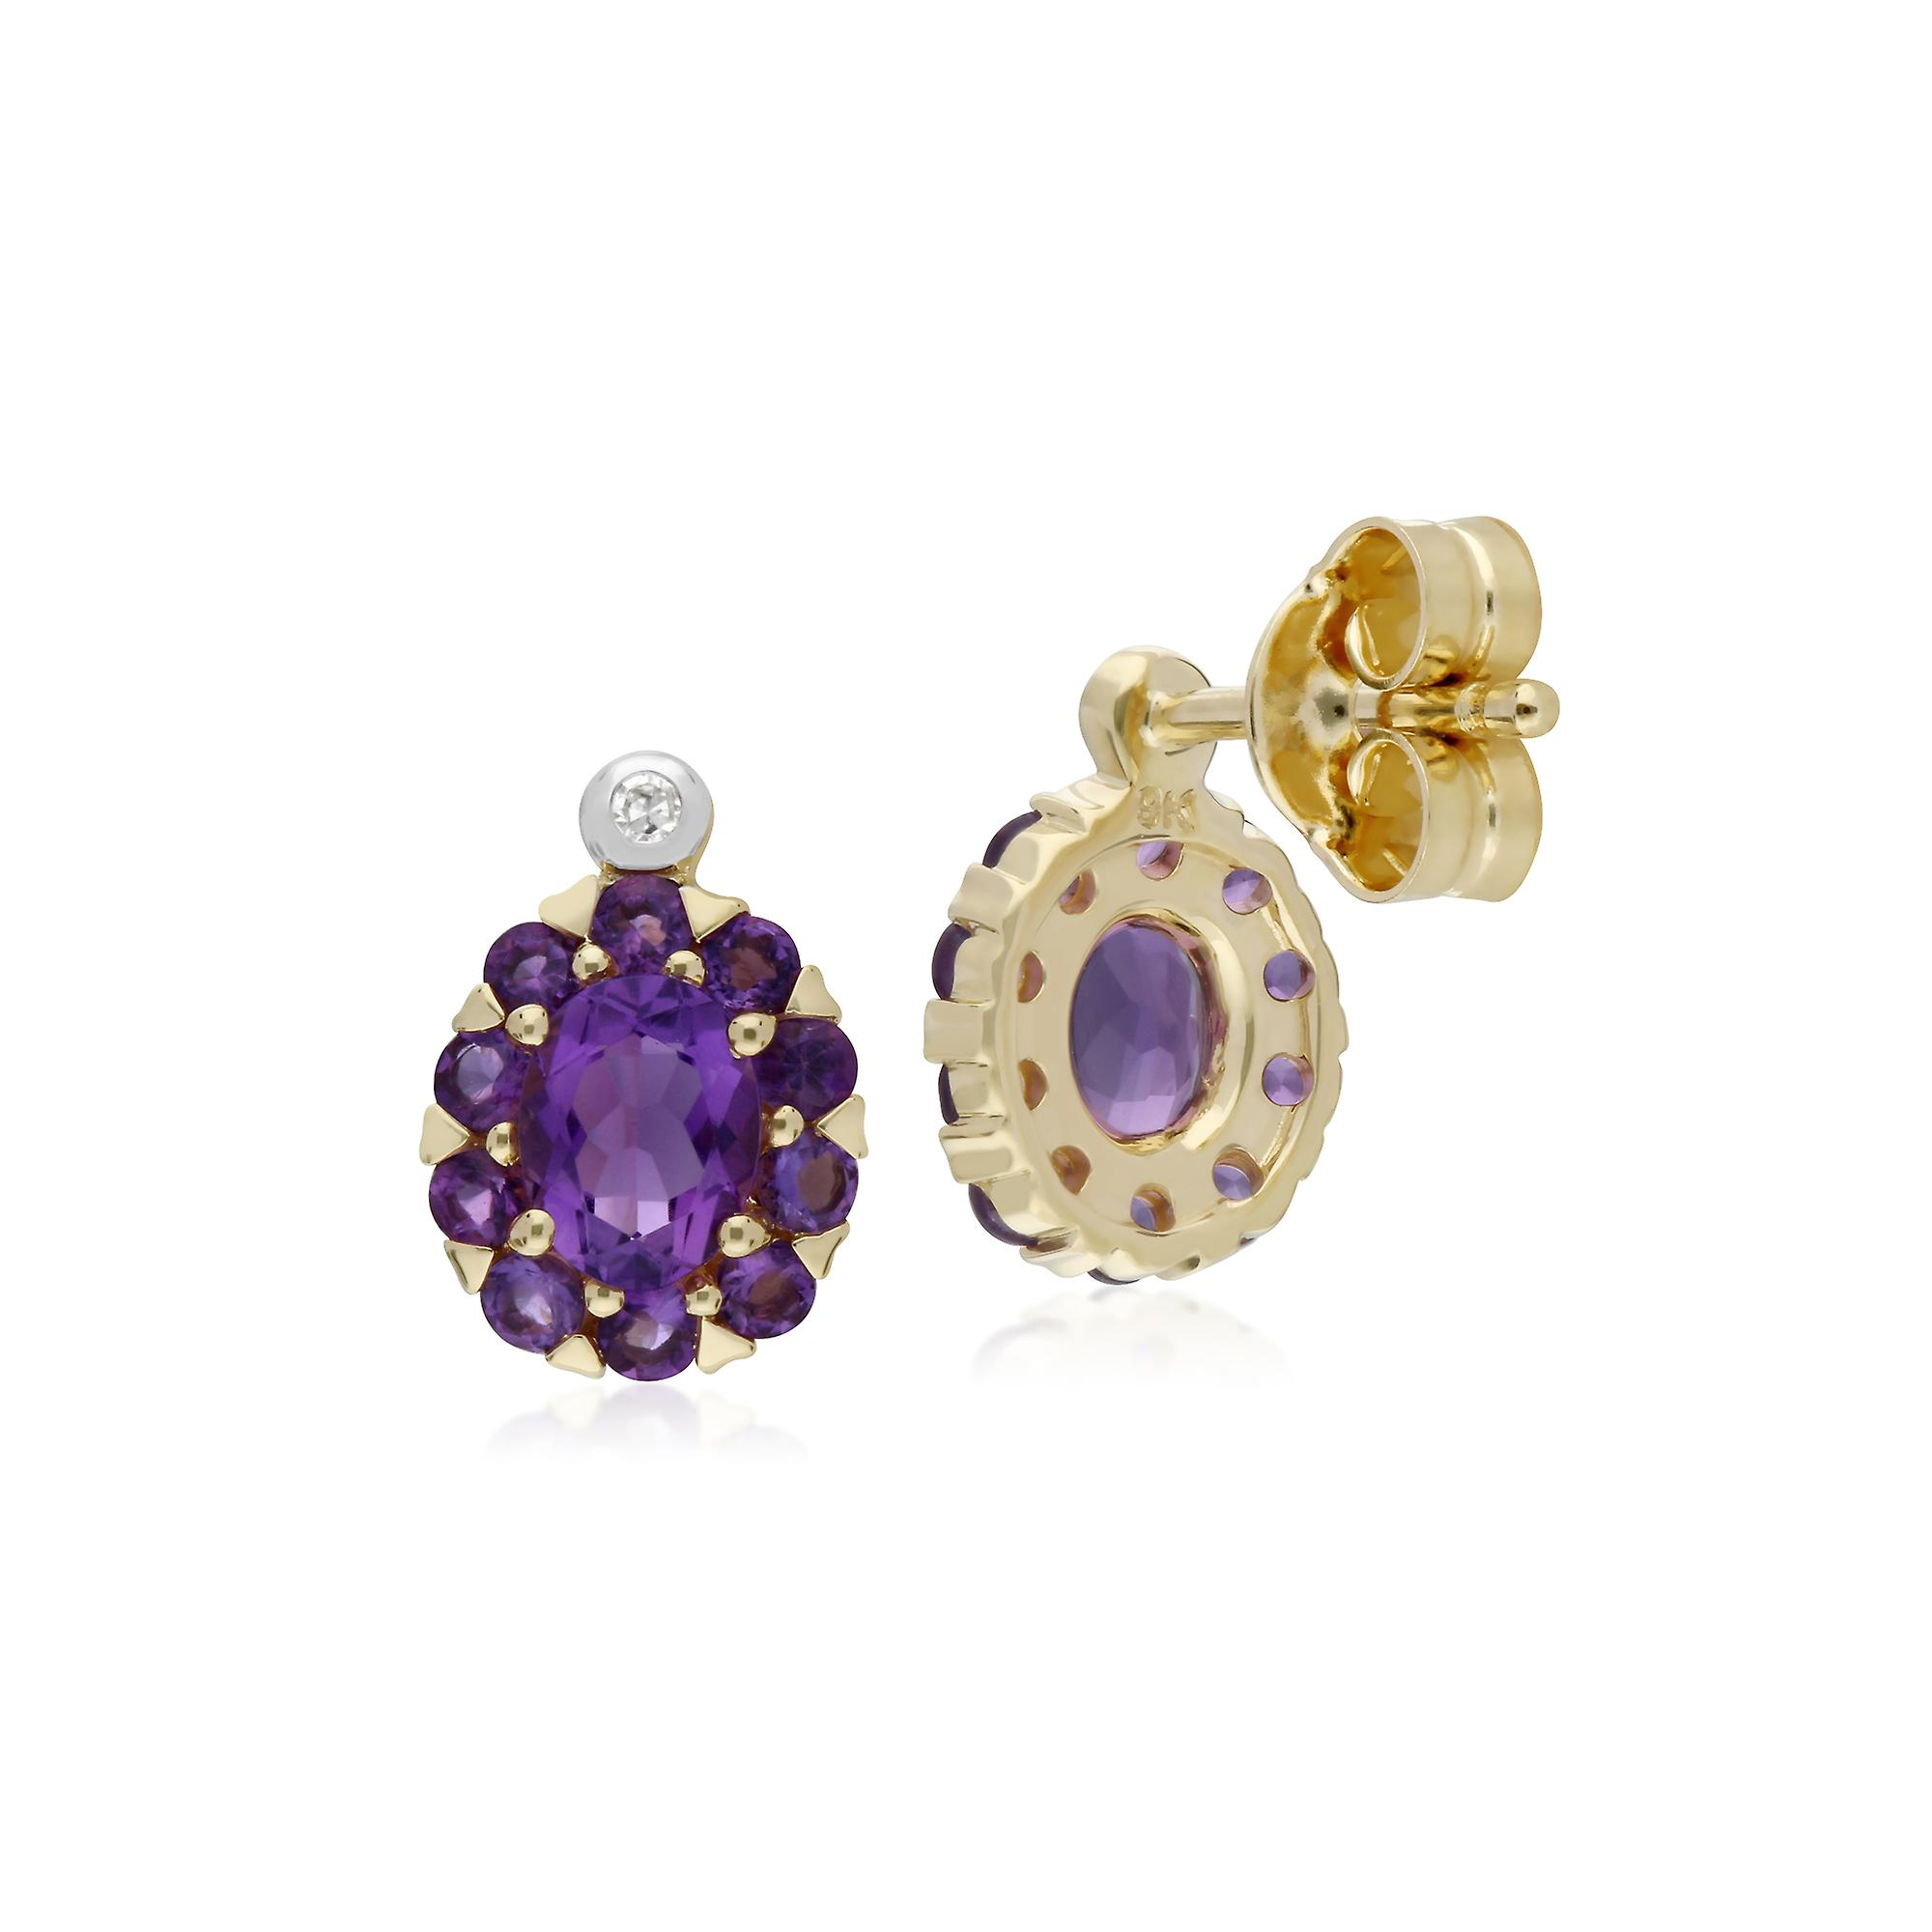 Gemondo 9ct Yellow Gold Amethyst & Diamond Oval Cluster Stud Earrings